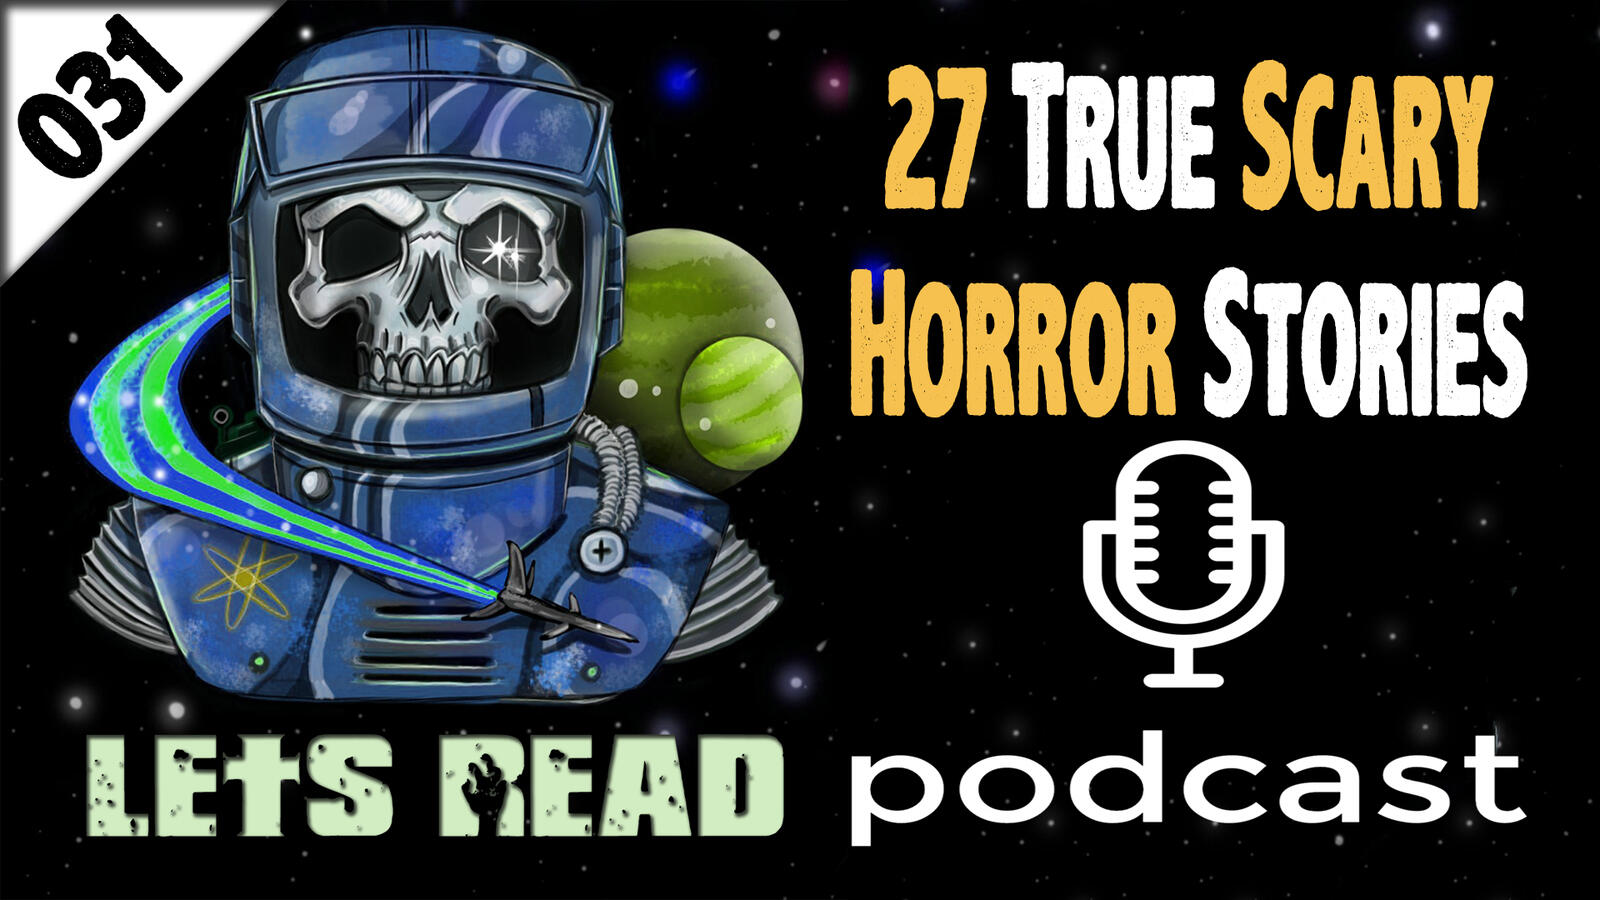 32: Episode 031    Hotel & Paranormal Investigator Stories   27 True Scary Horror Stories